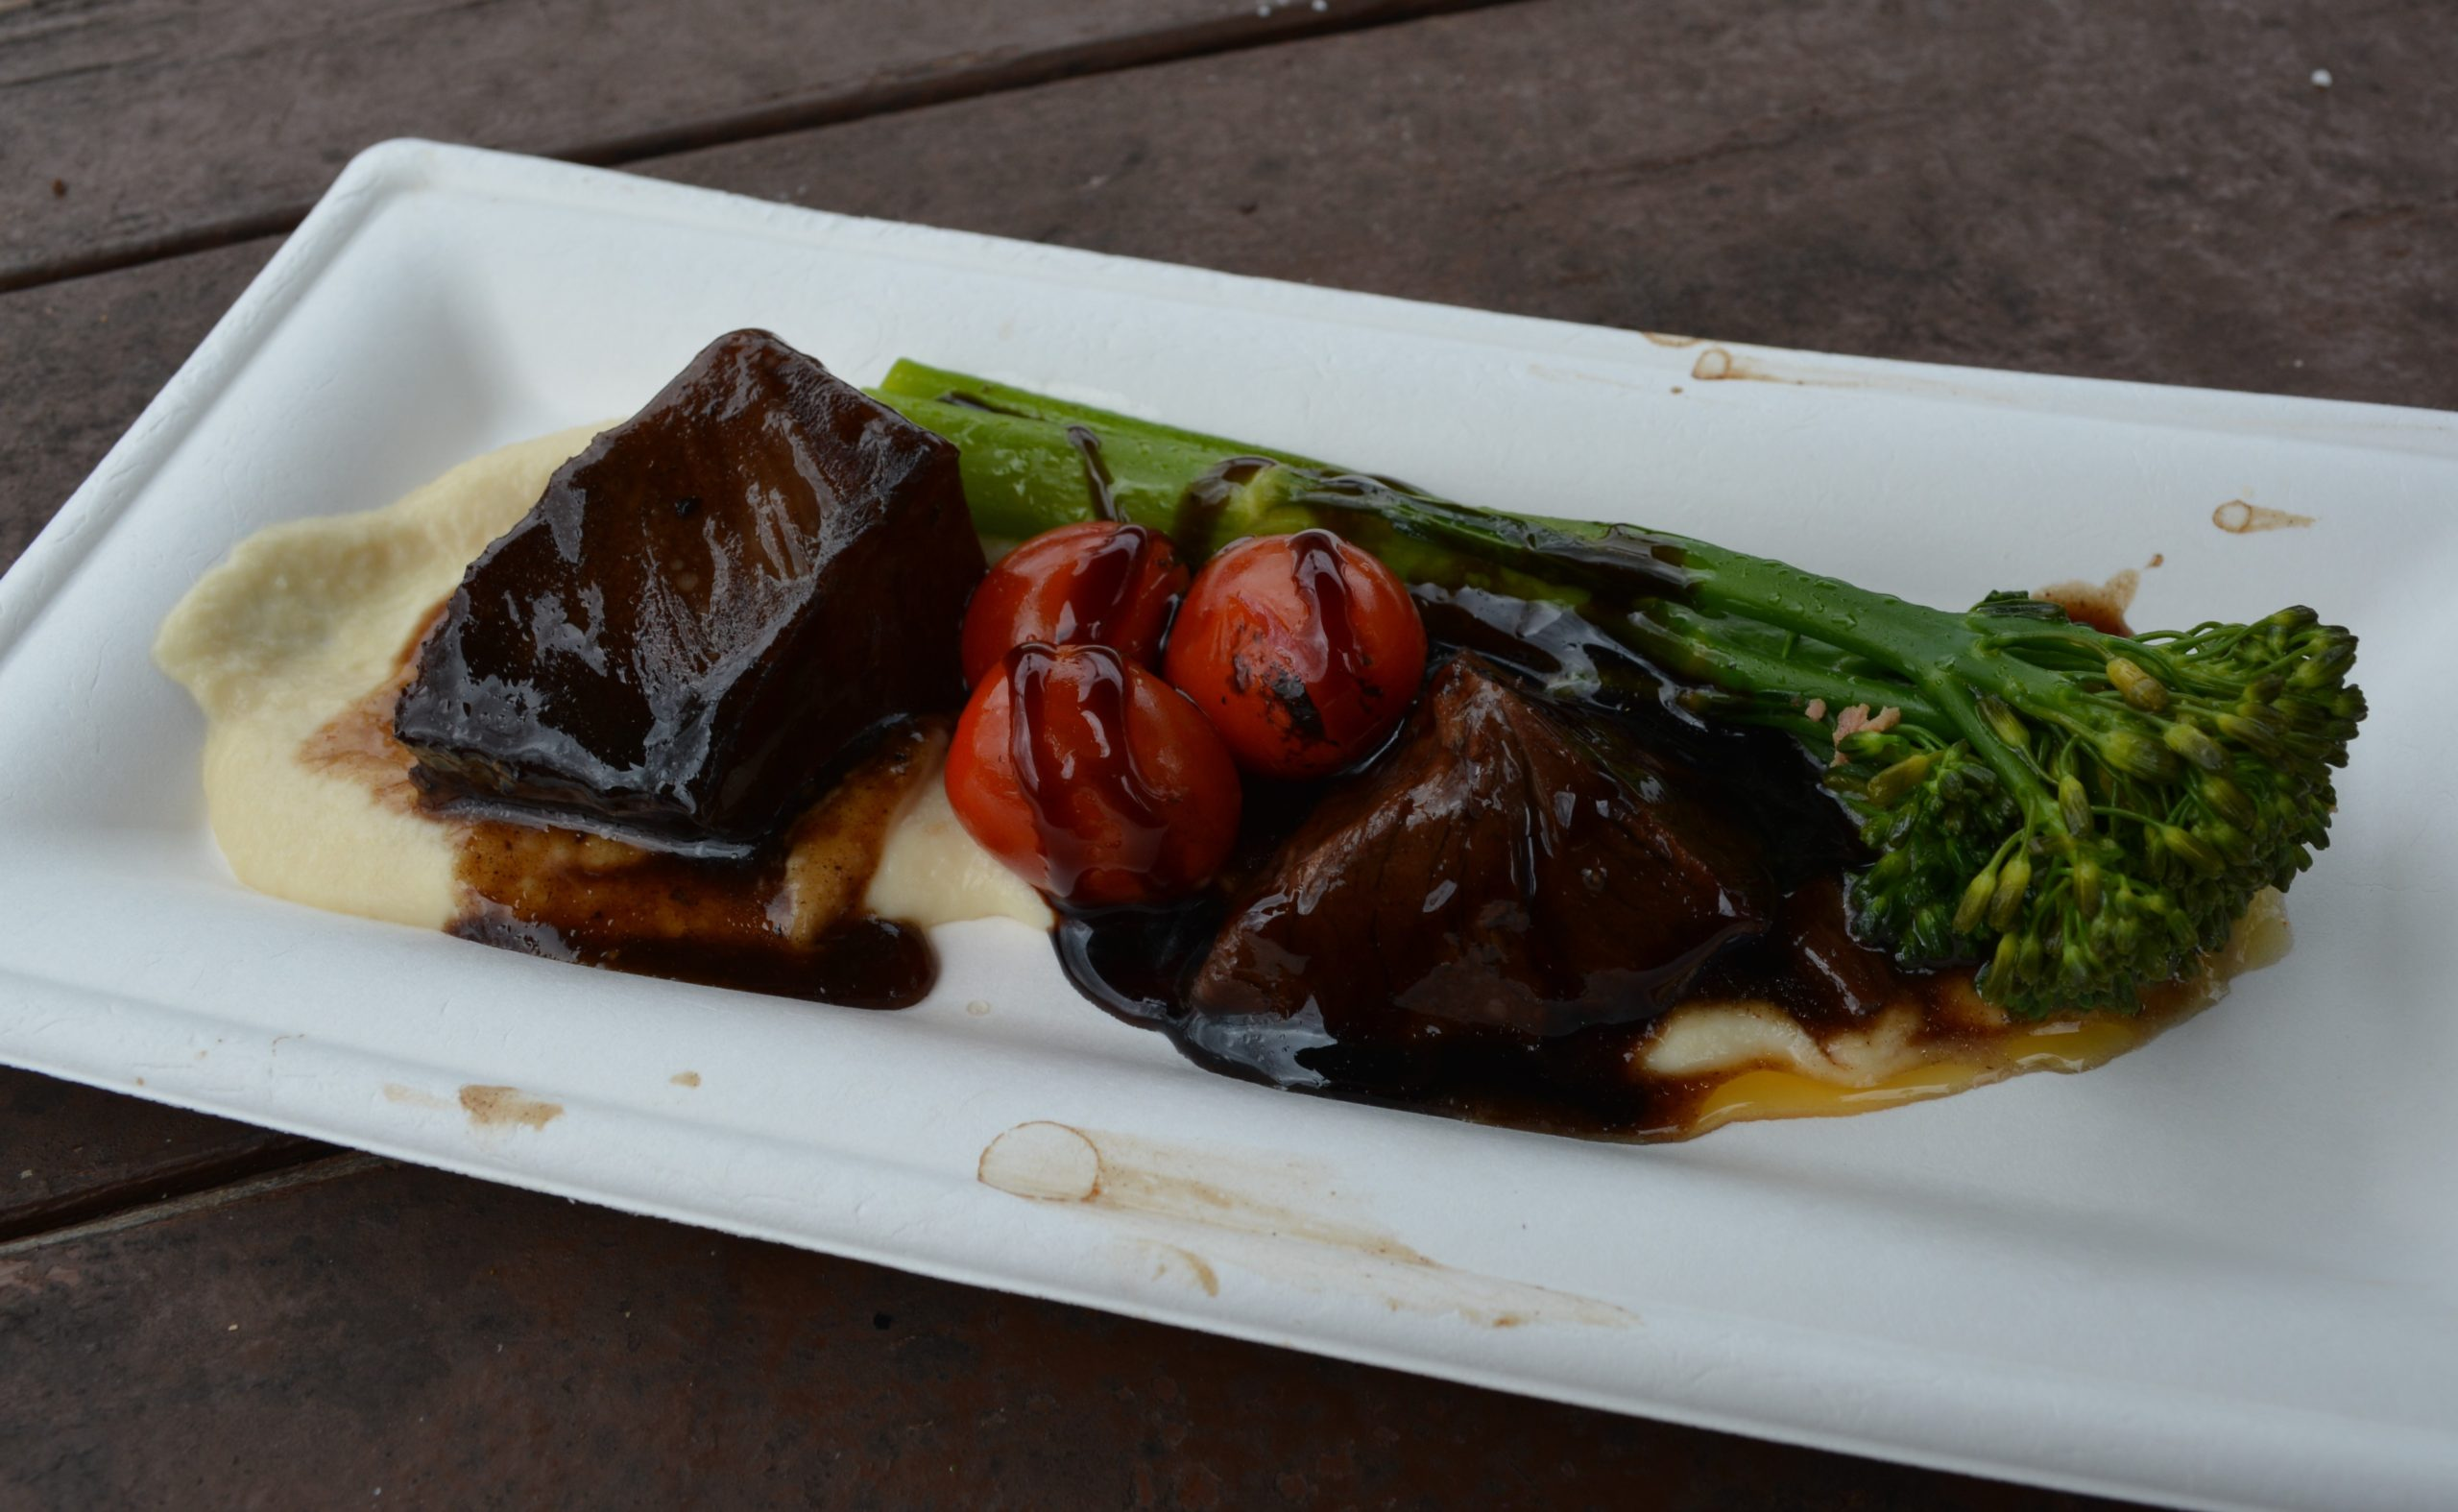 Red Wine-braised Beef Short Rib with Parsnip Purée, Broccolini, Baby Tomatoes and Aged Balsamic from Cuisine Classique in Germany